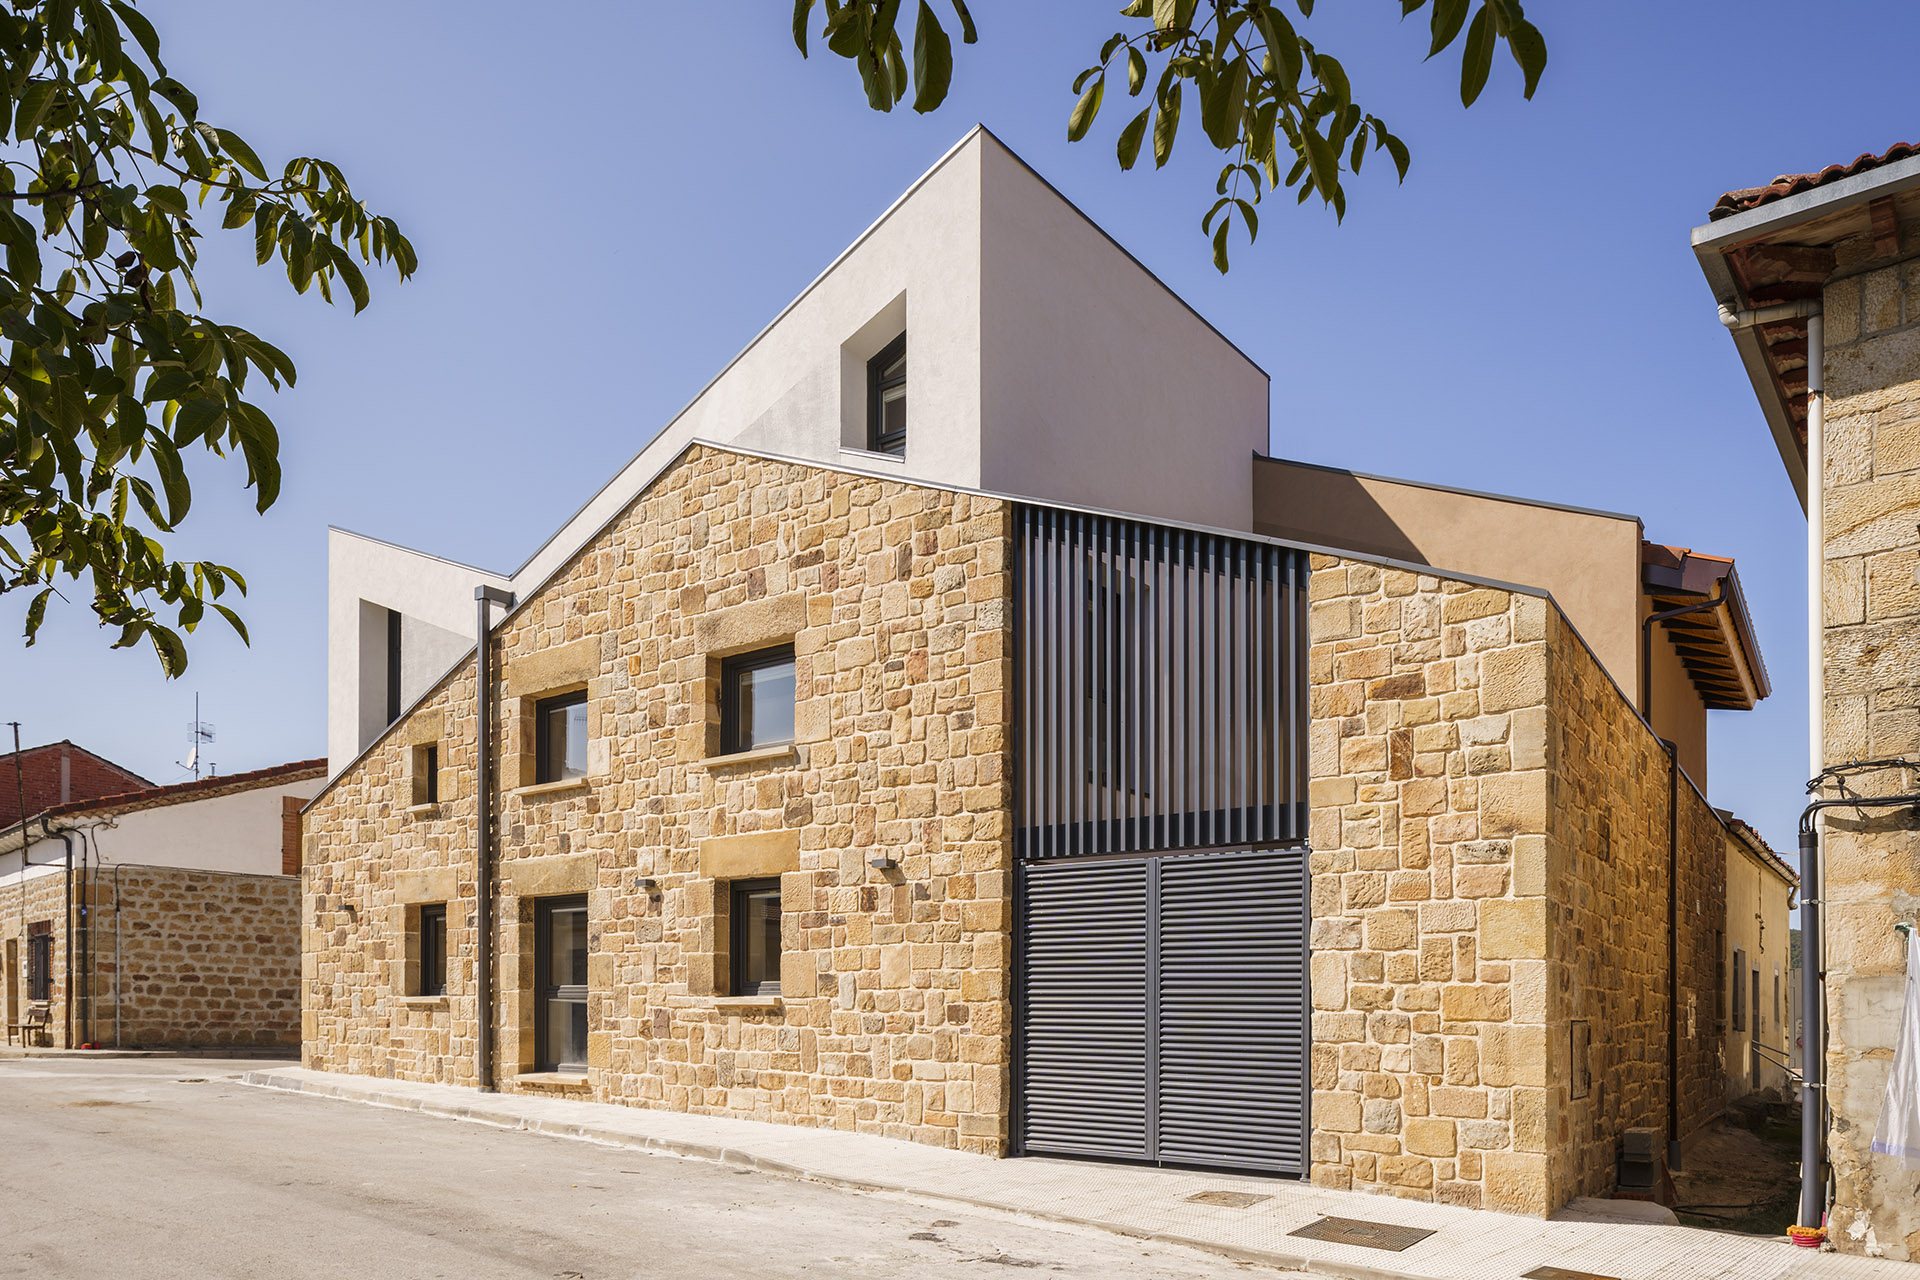 Stone for the perimeter walls of a house in Spain. The design is inspired by the local natural monument